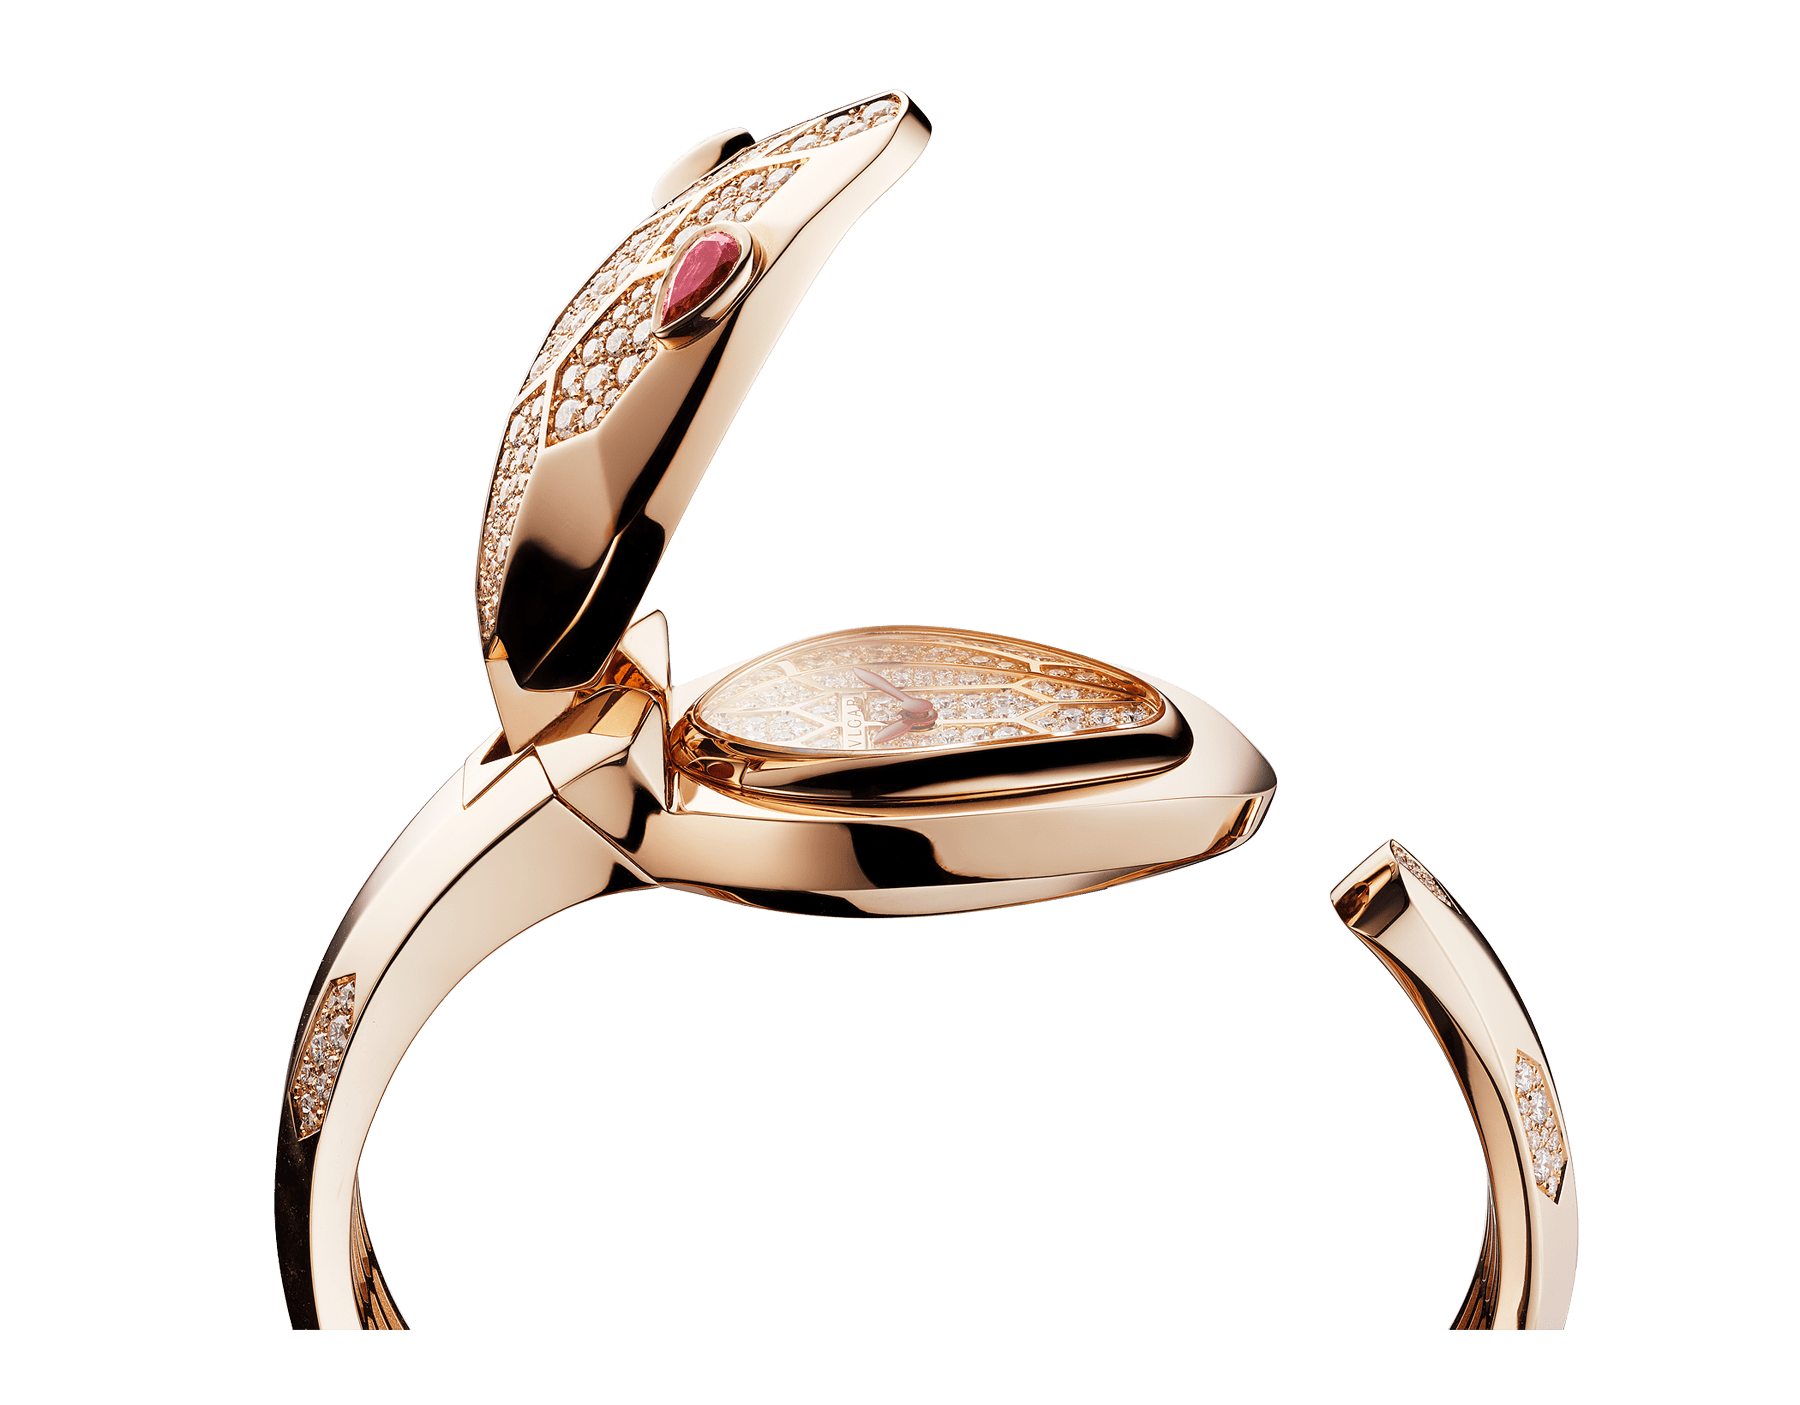 Serpenti Misteriosi Secret Watch in 18 kt rose gold case and bangle bracelet both set with round brilliant-cut diamonds, 18 kt rose gold diamond pavé dial and pear-shaped rubellite eyes. SrpntMister-SecretWtc-rose-gold2 image 1